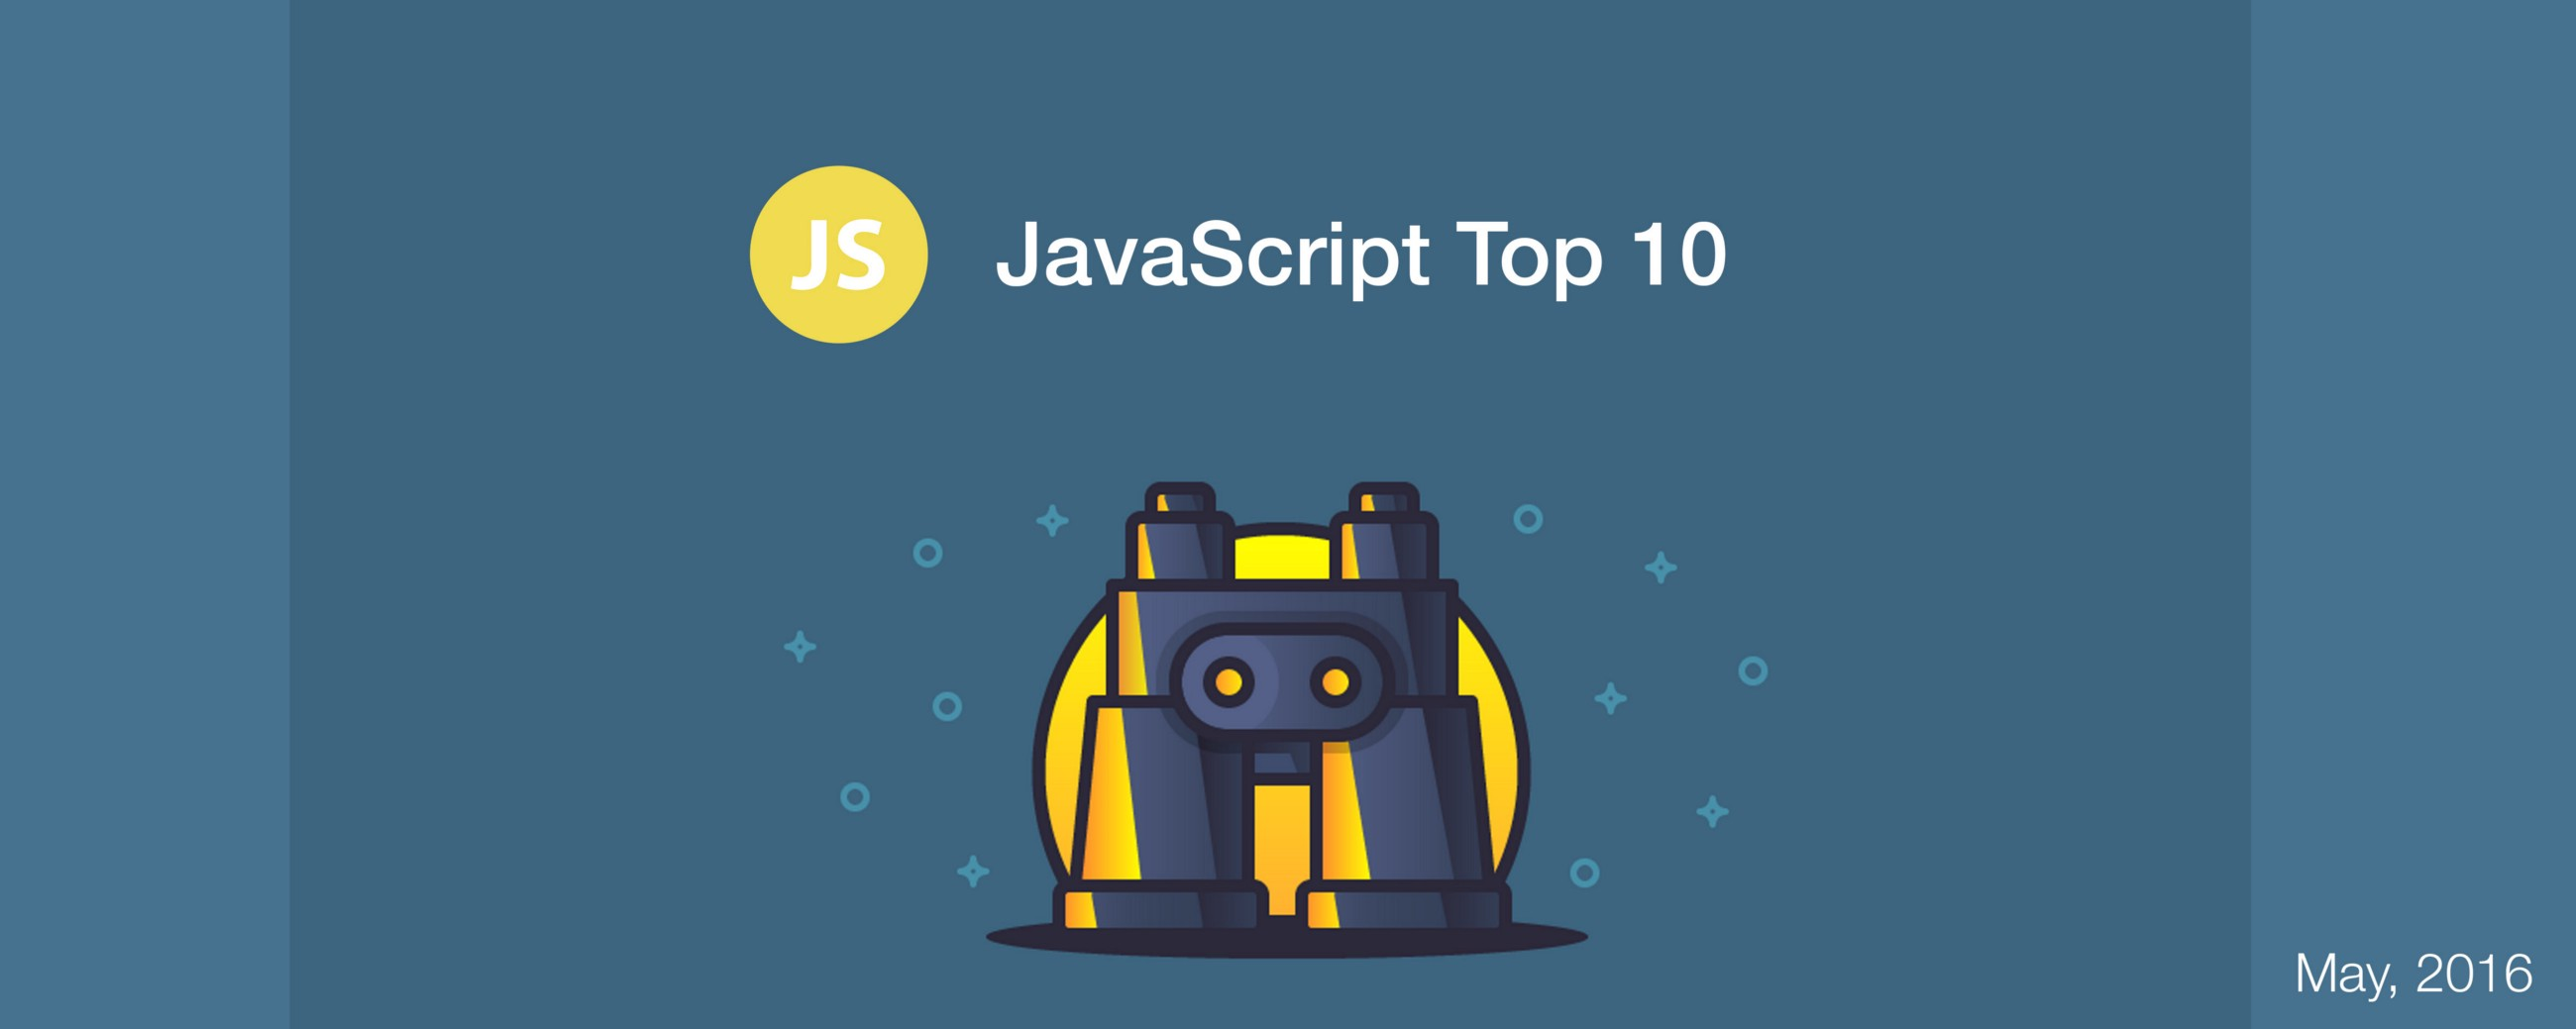 Top 10 JavaScript Articles from Last Month.